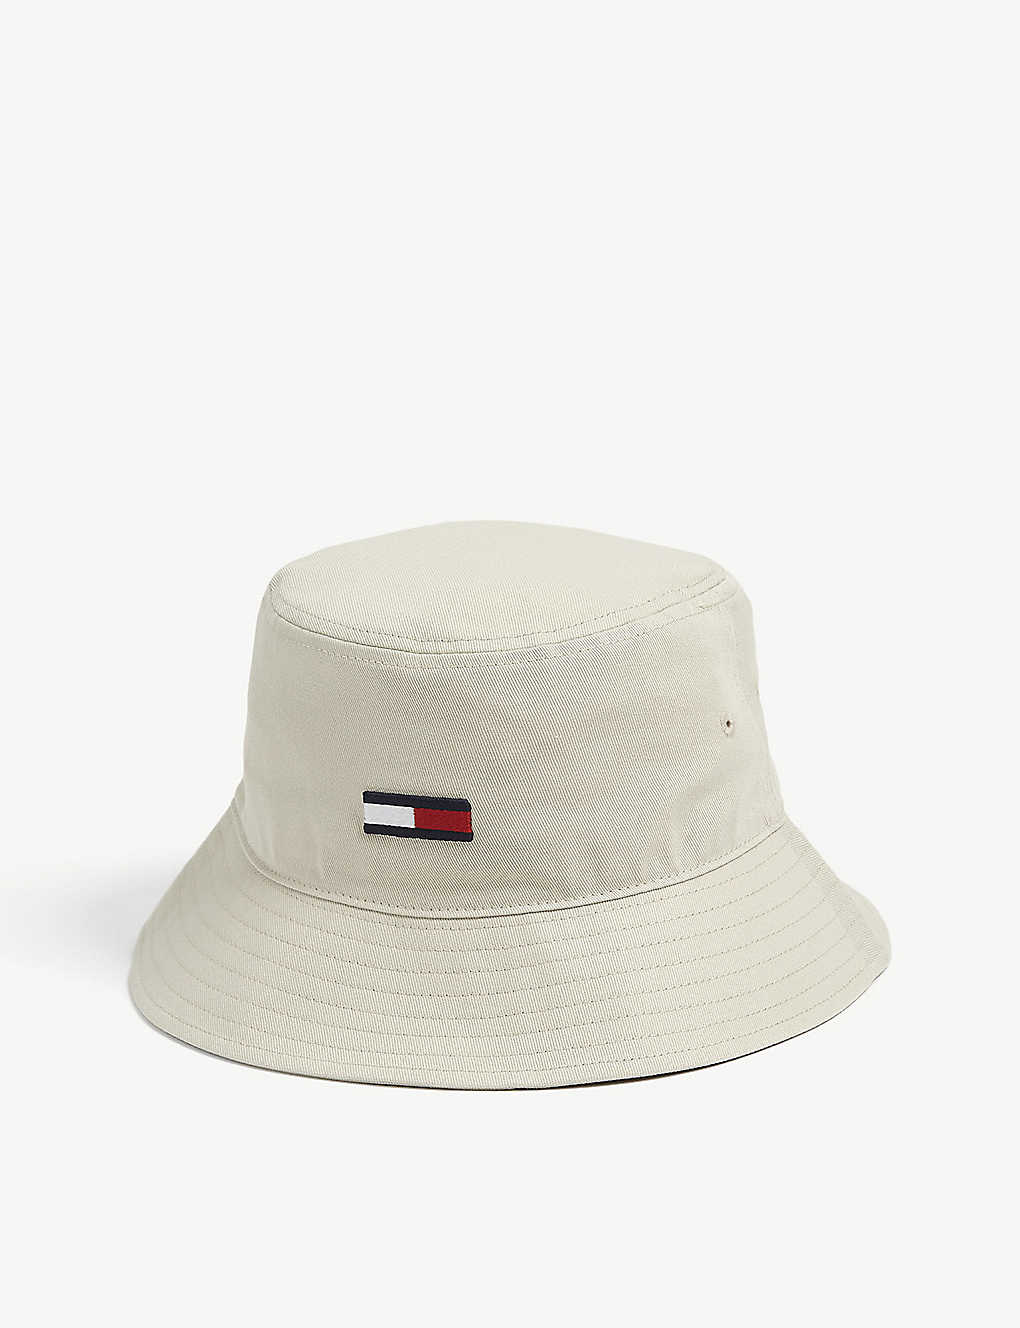 TOMMY HILFIGER: Logo-print cotton bucket hat